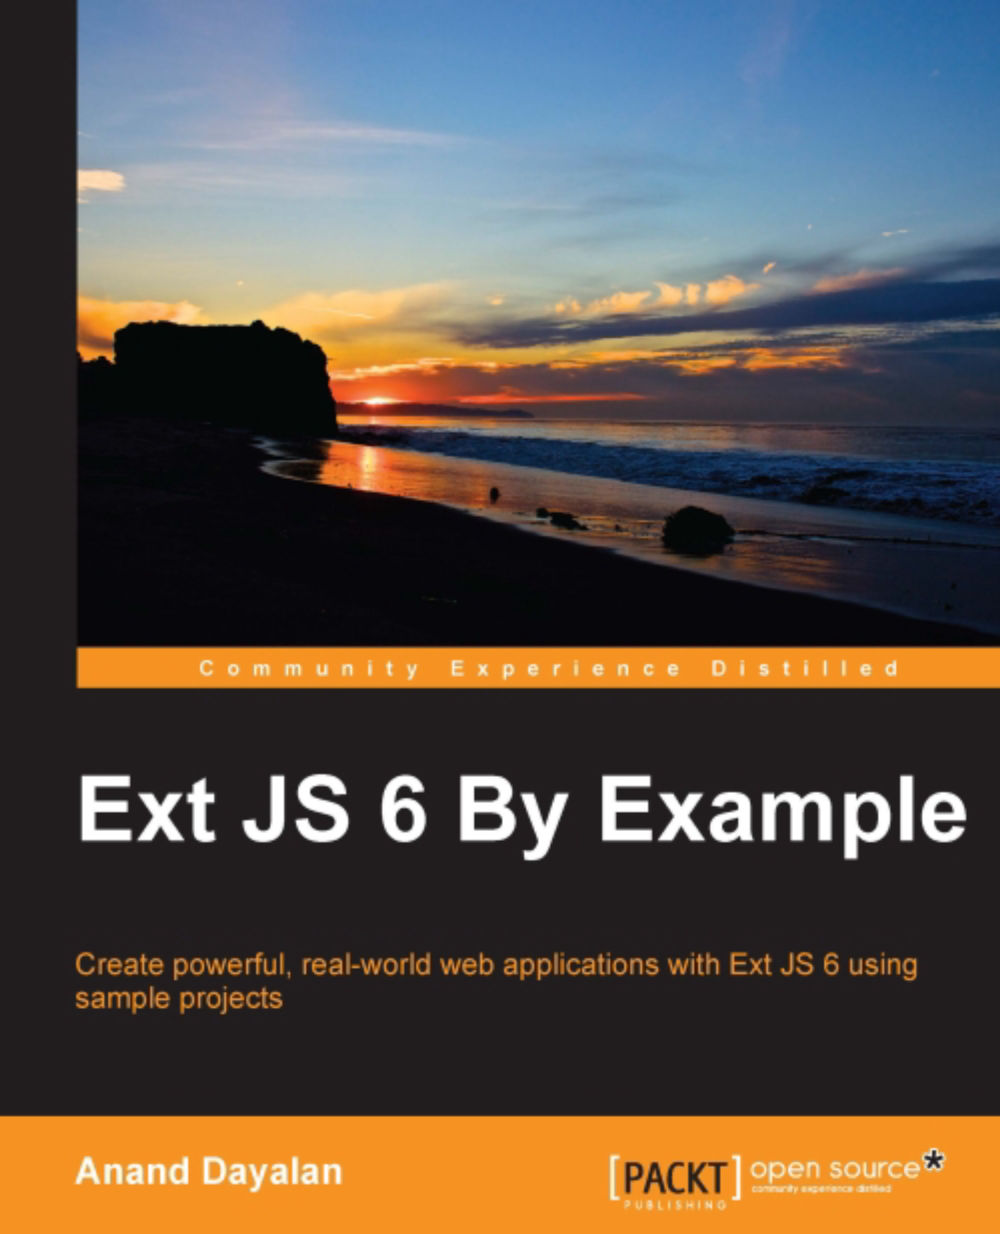 Cell editing - Ext JS 6 By Example